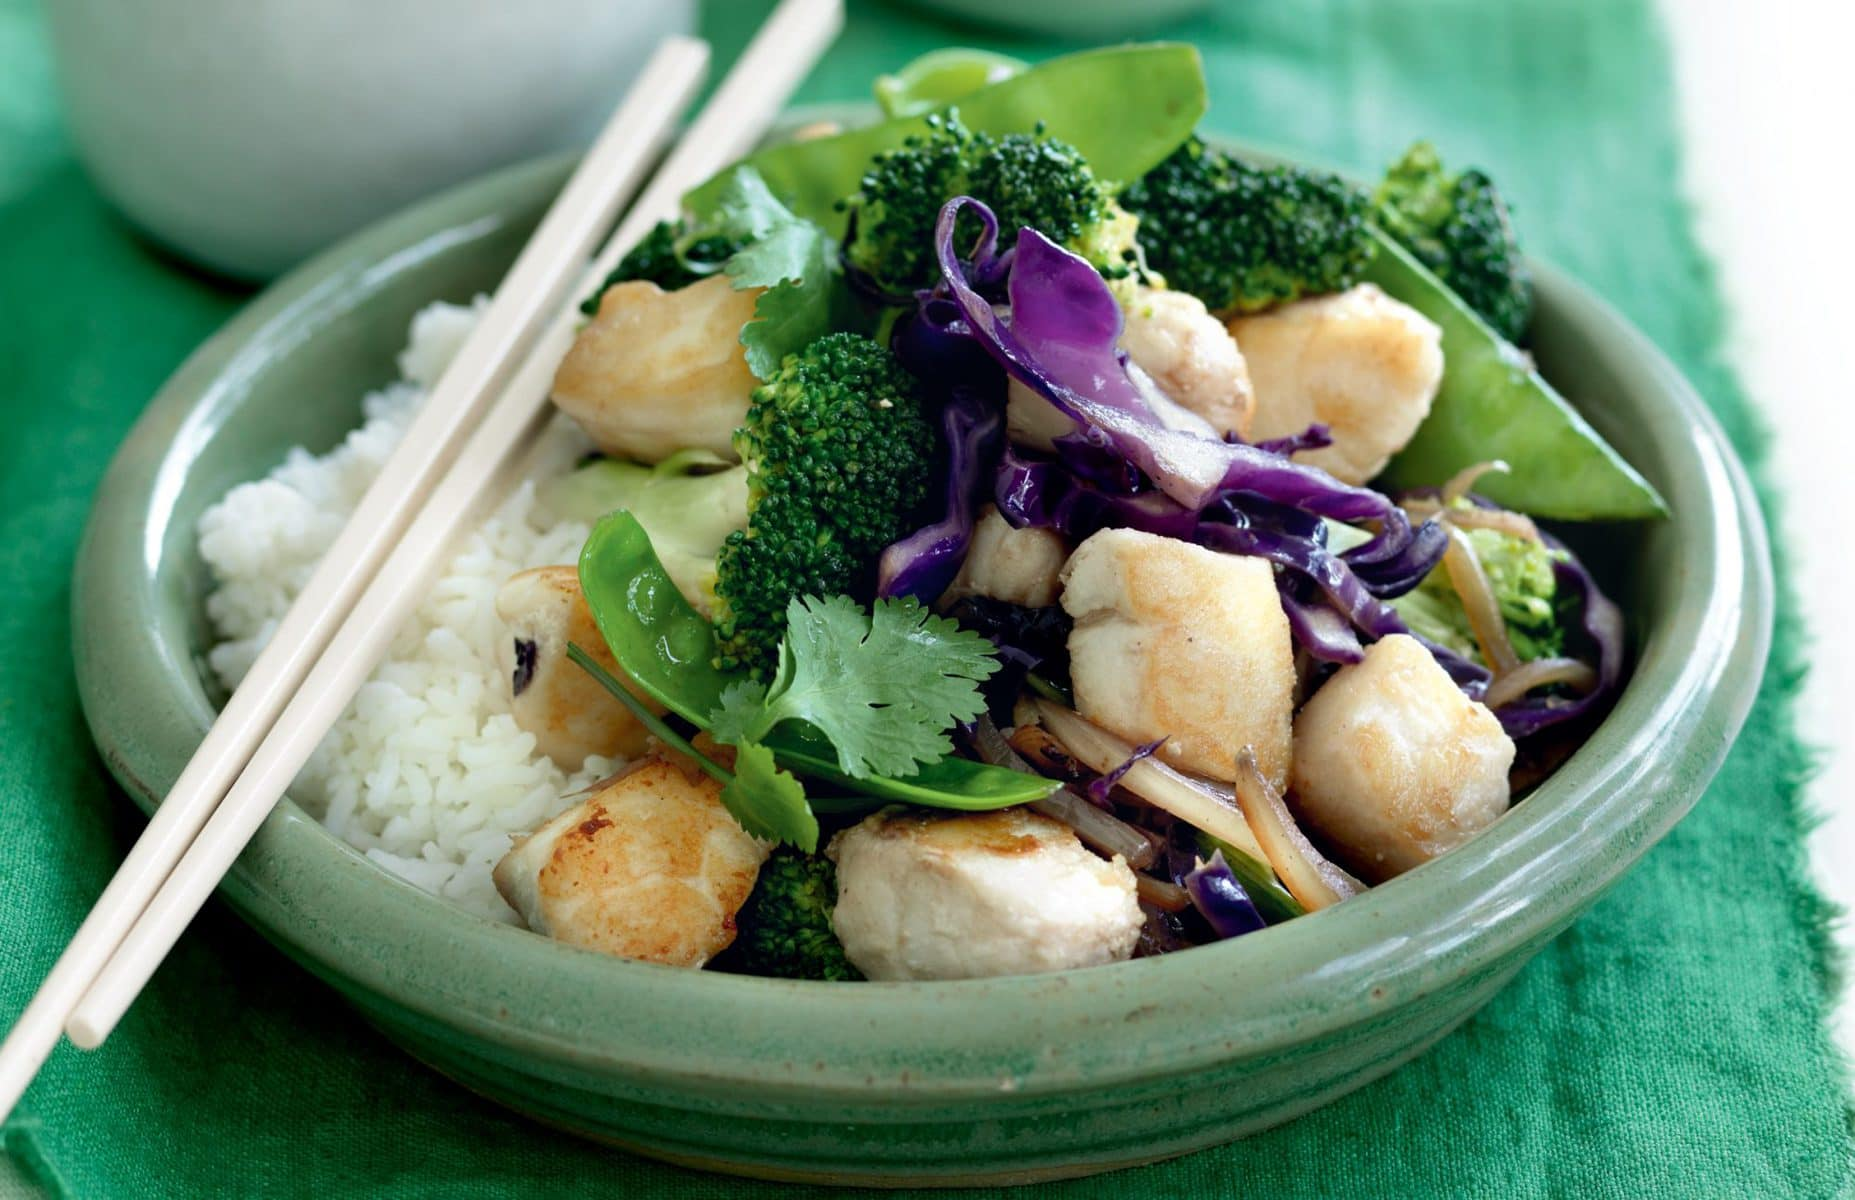 Fish stir fry with broccoli and ginger healthy food guide for Fish and broccoli diet